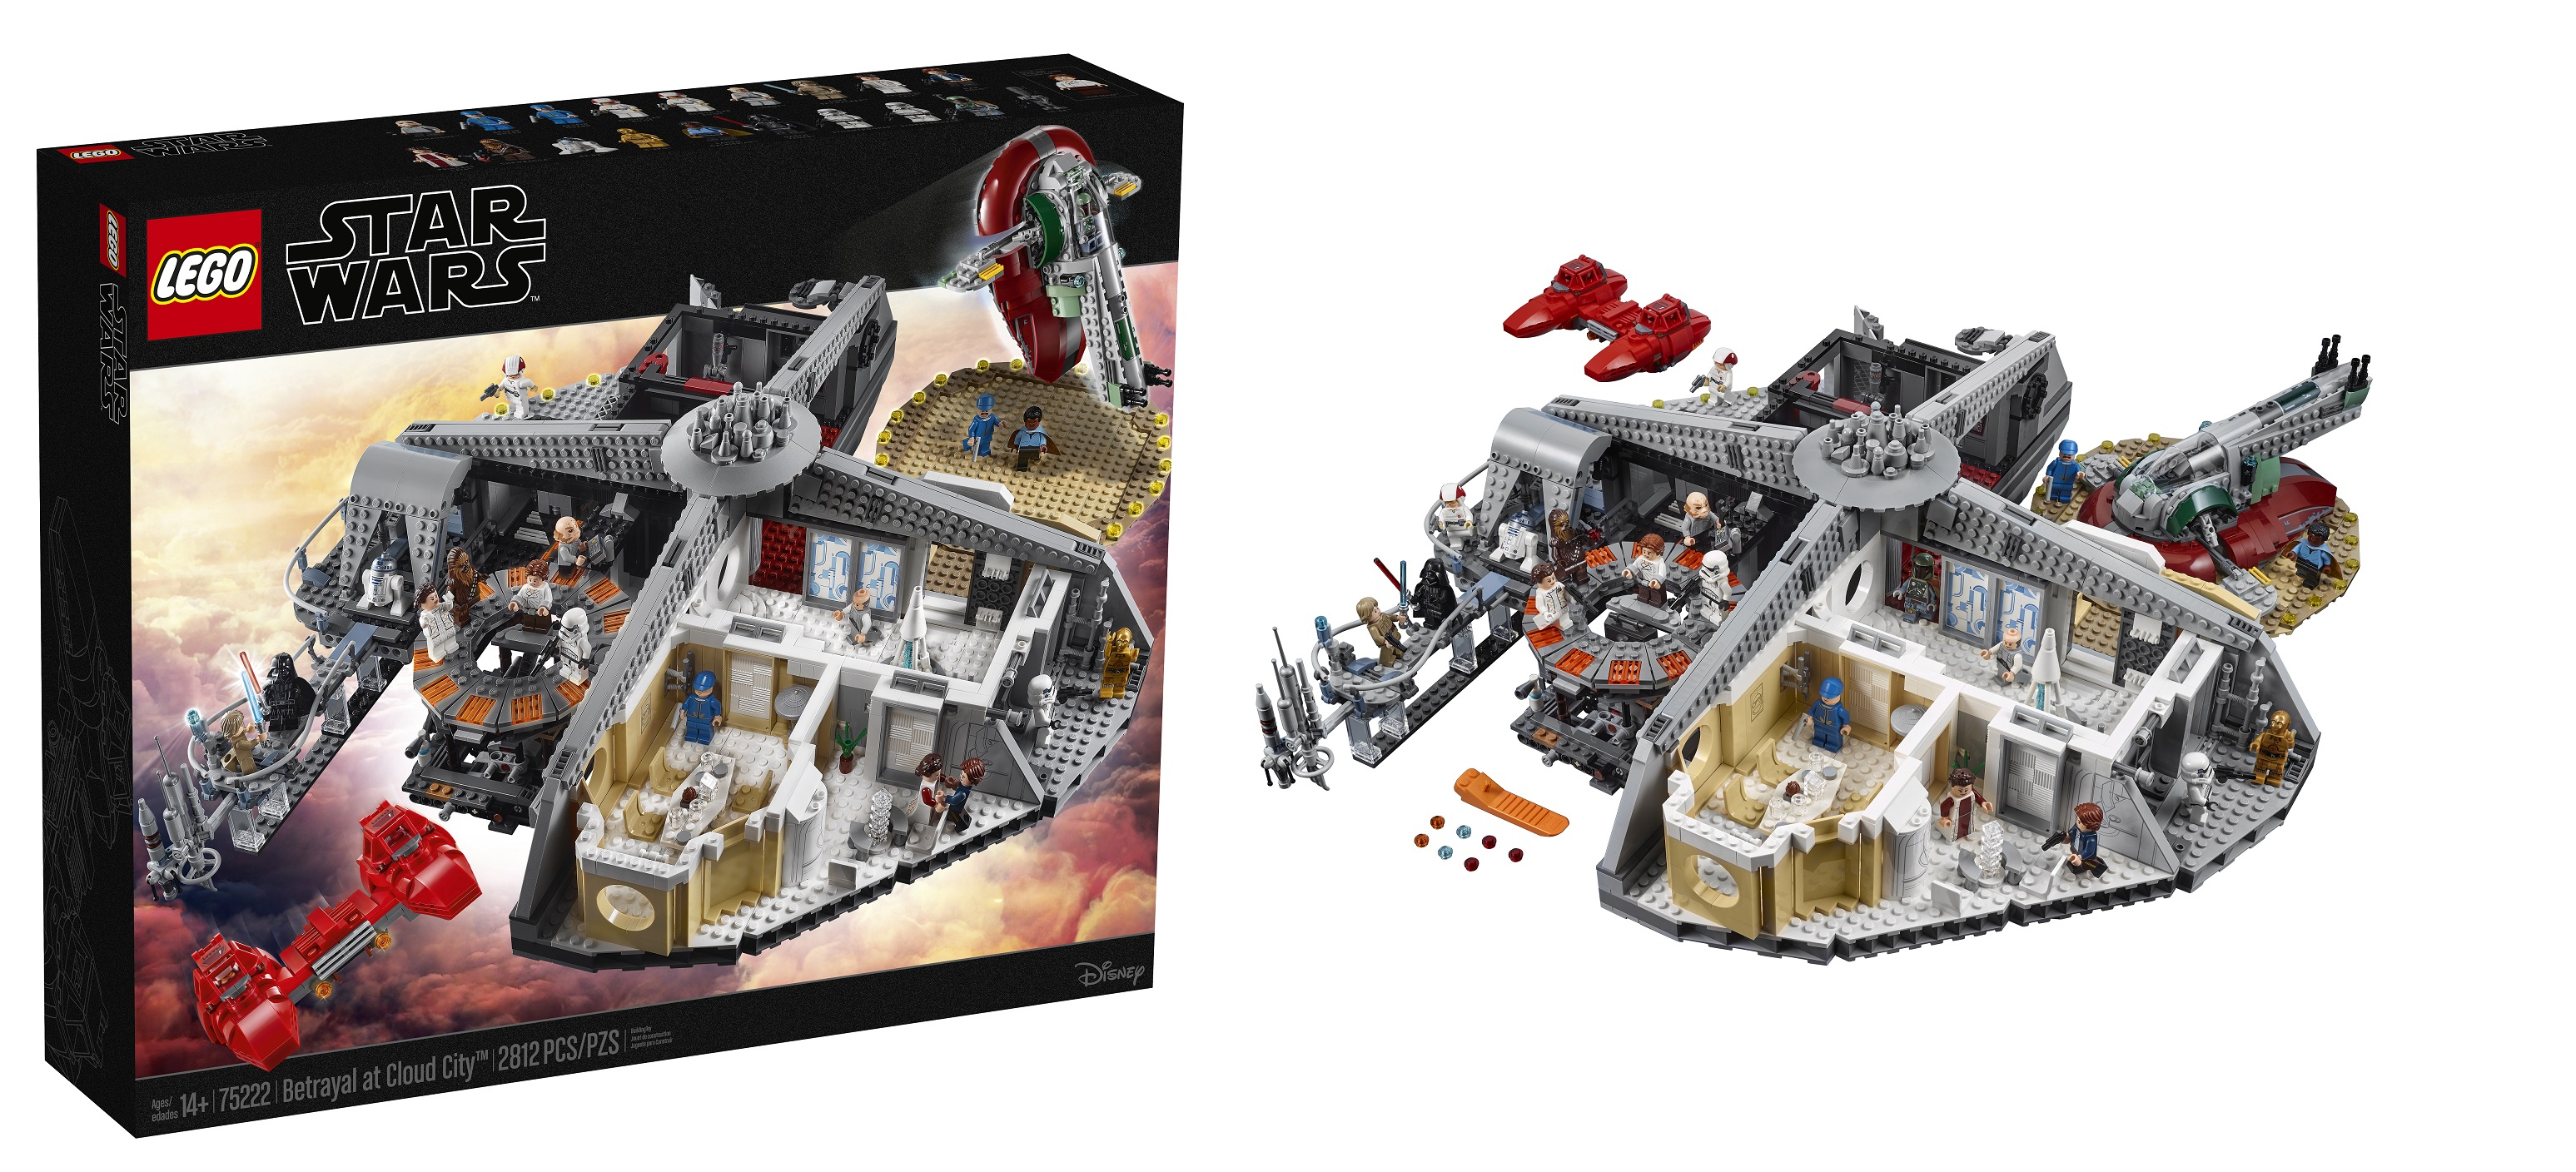 Lego Unveils 75222 Betrayal At Cloud City Playset – Jay's for Jay's Brick Blog